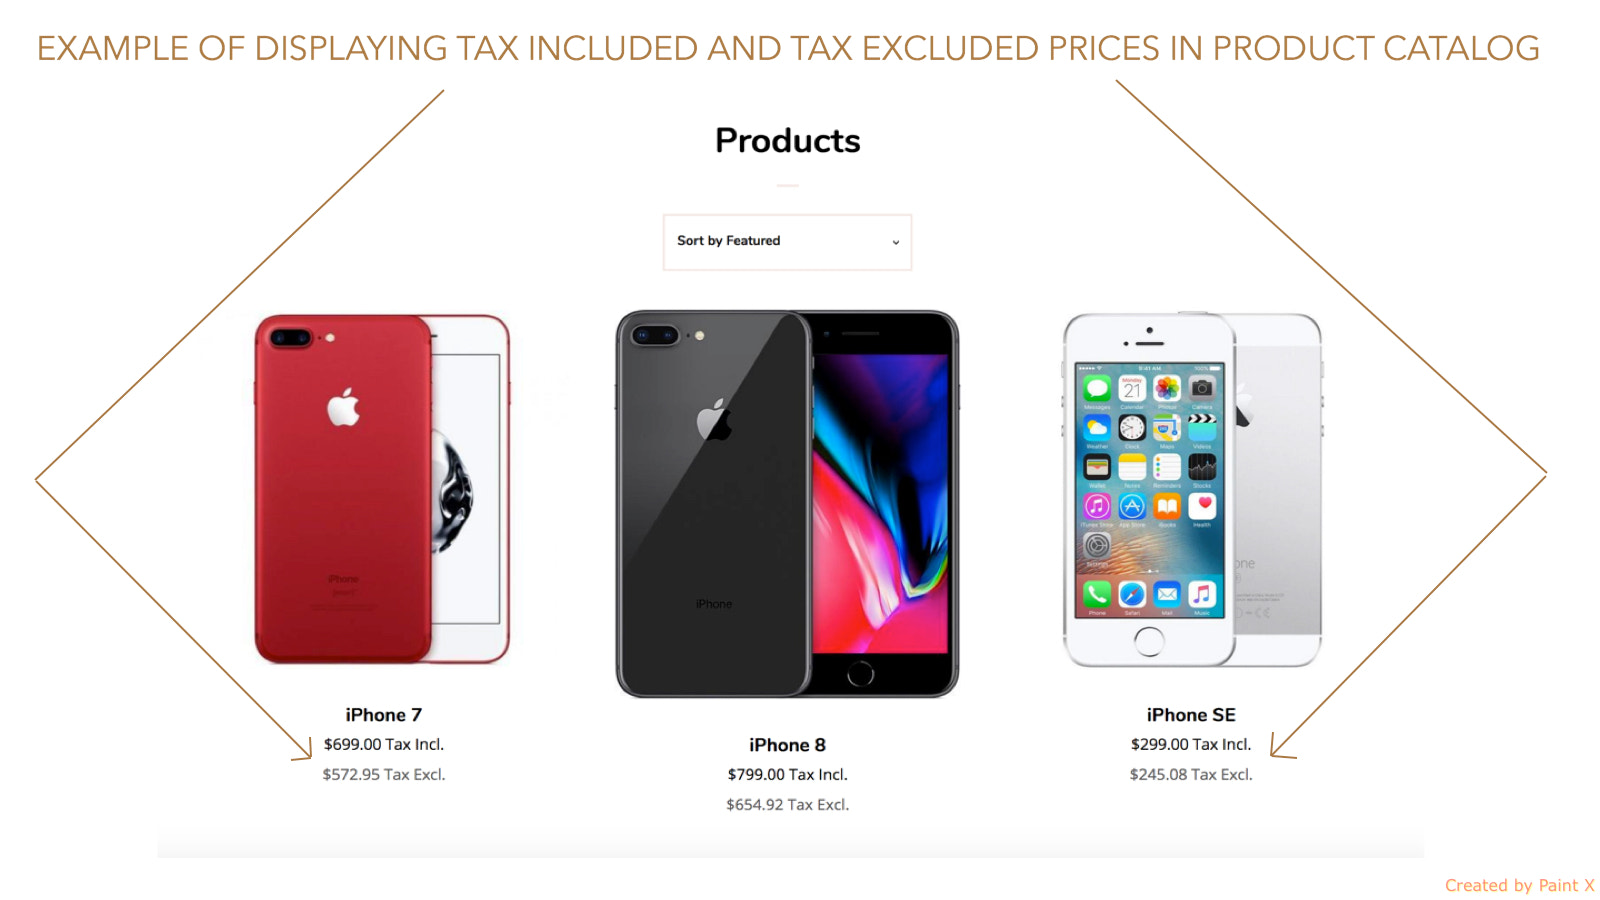 Vat included and Vat excluded prices for all products in catalog